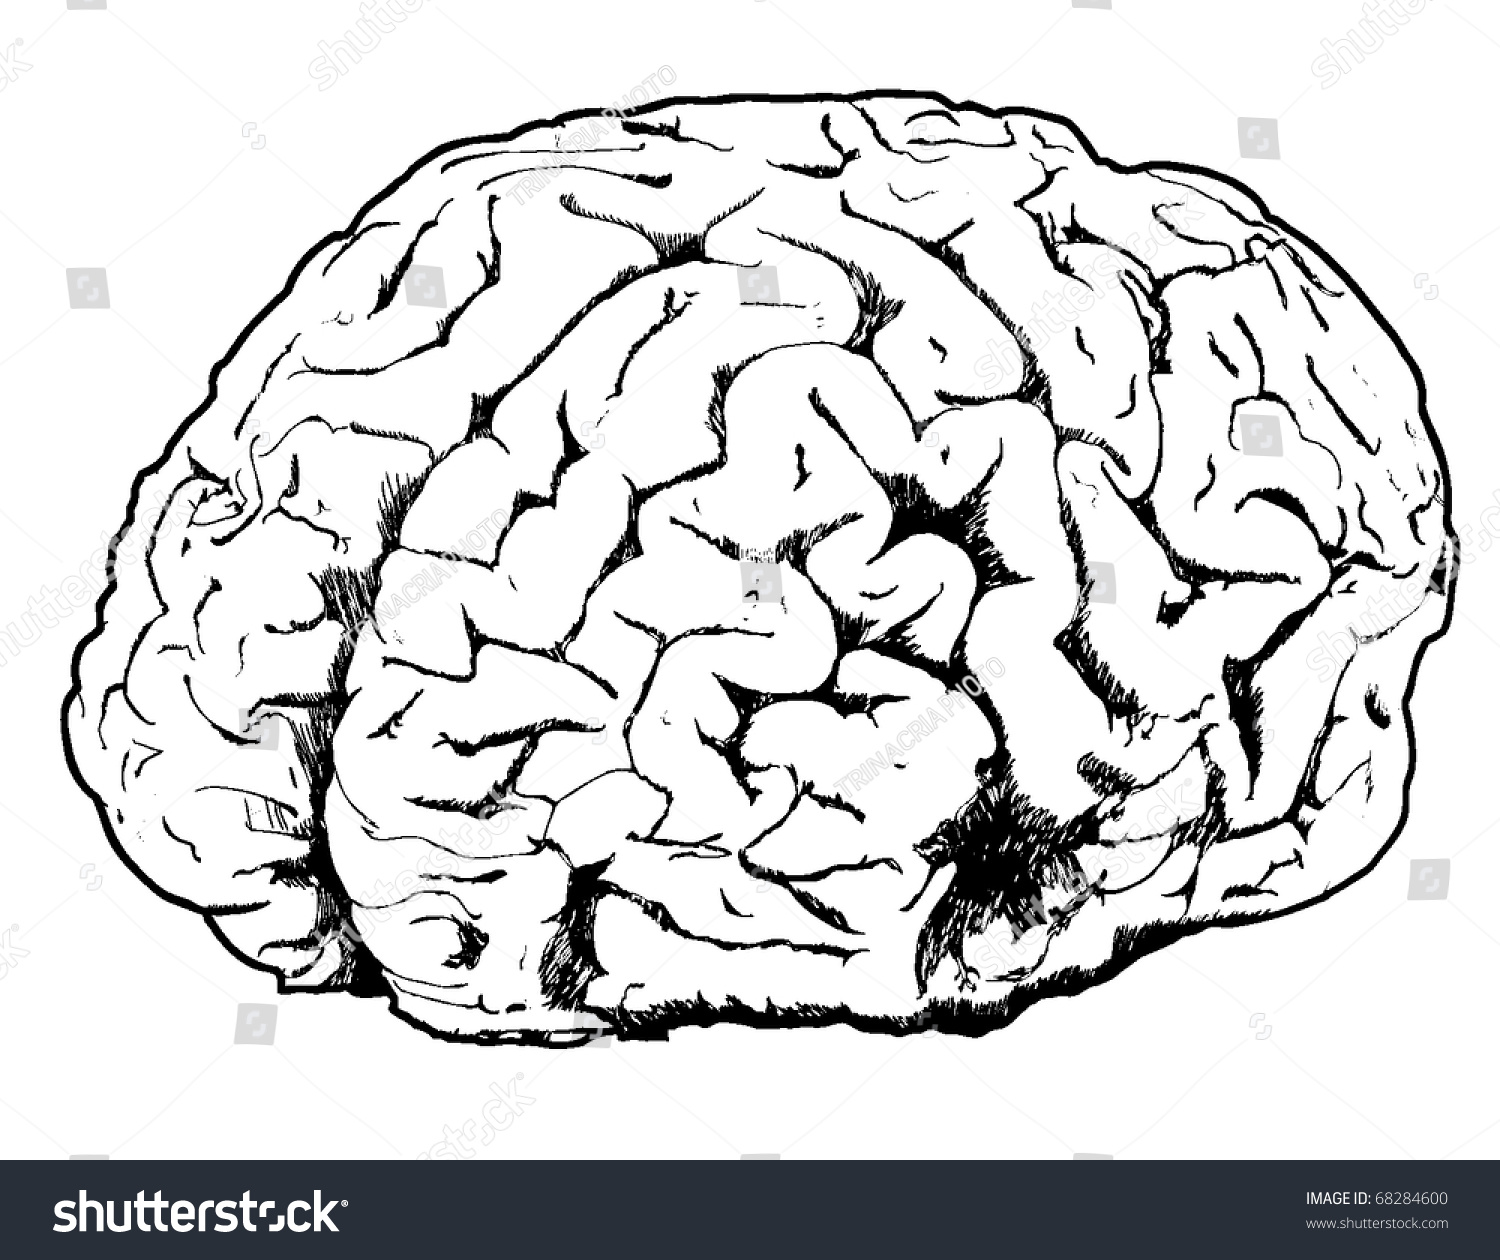 Line Drawing Brain : Line drawing brain stock vector shutterstock